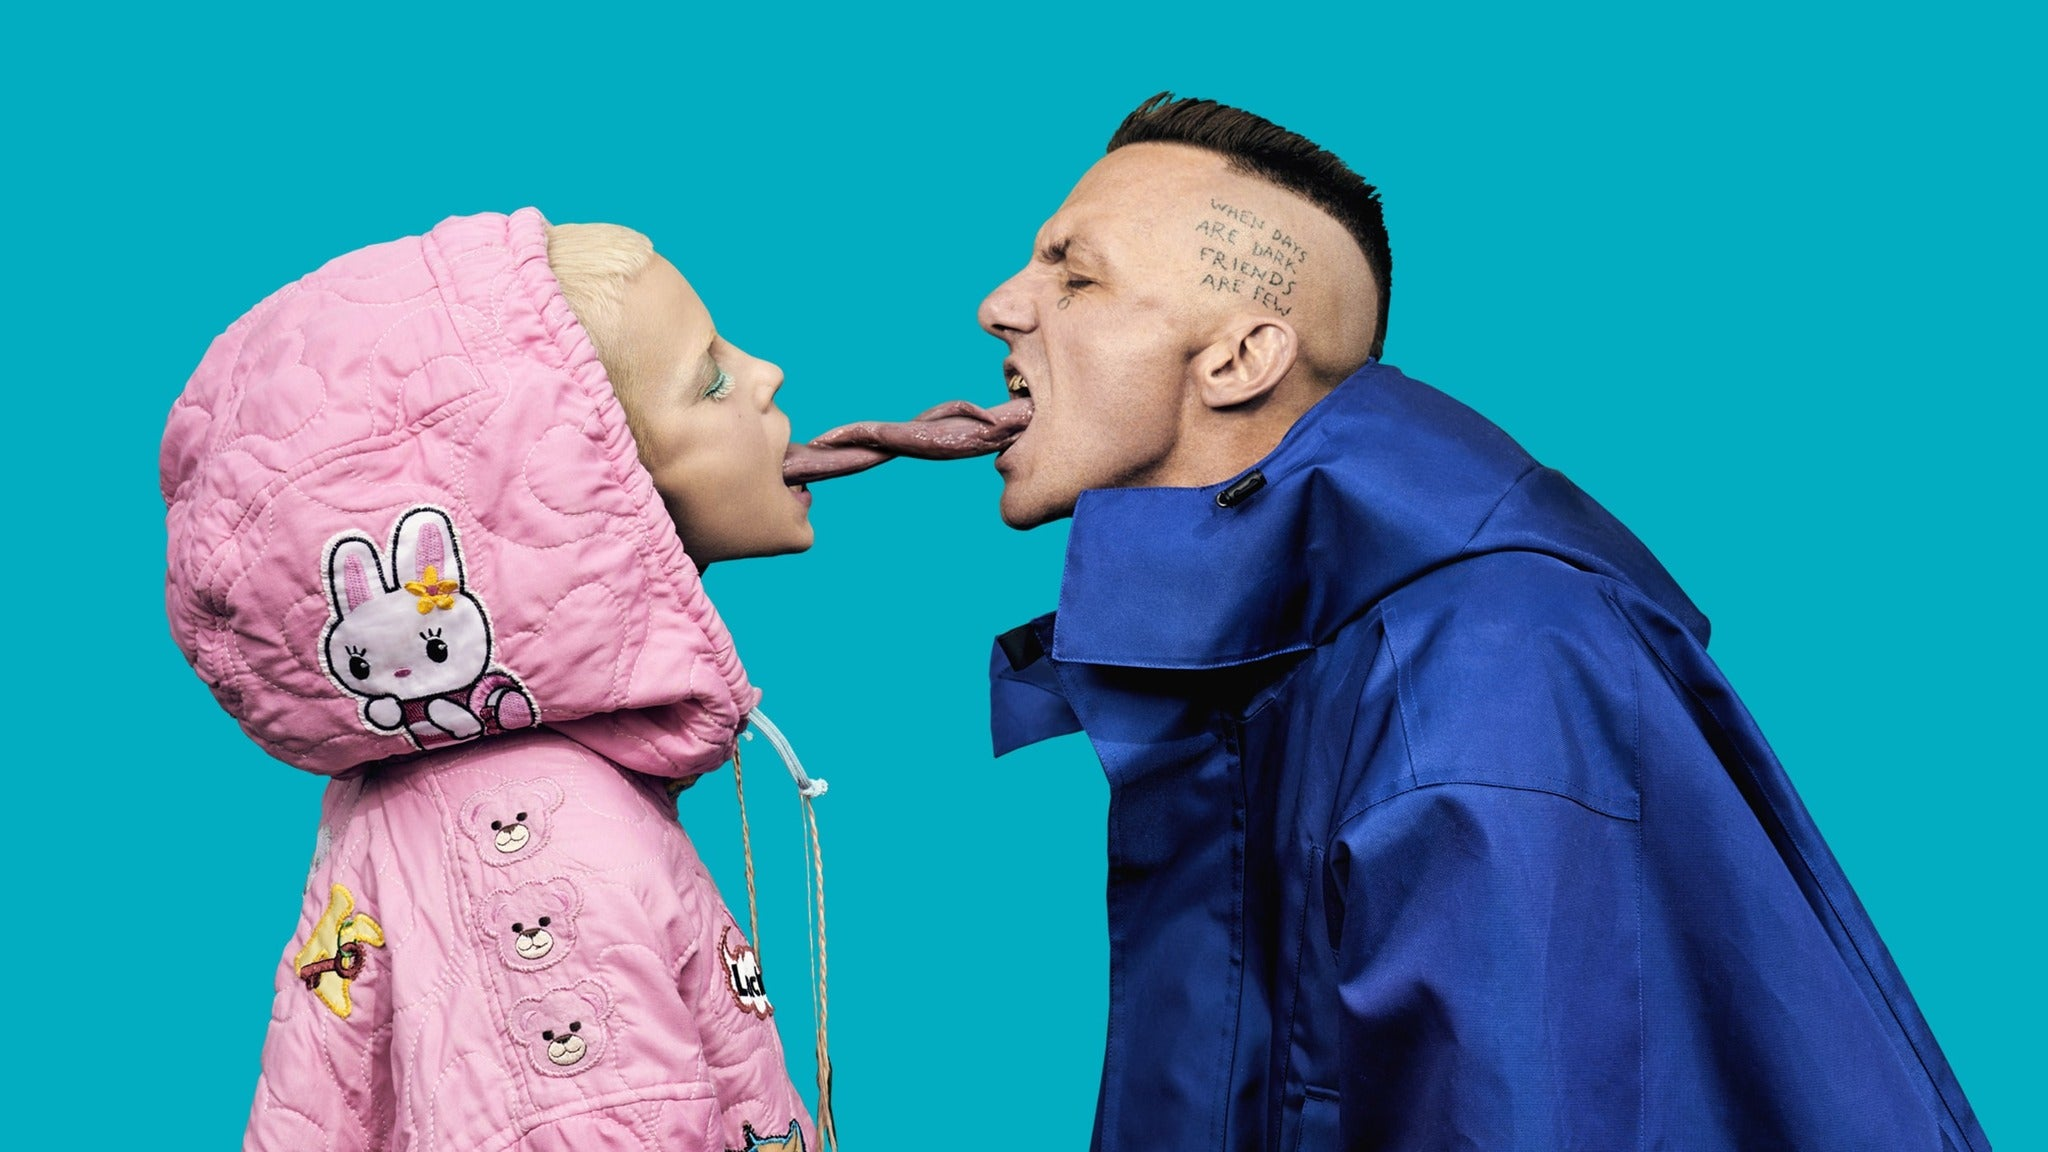 Die Antwoord - House Of Zef USA Tour 2020 at The Depot